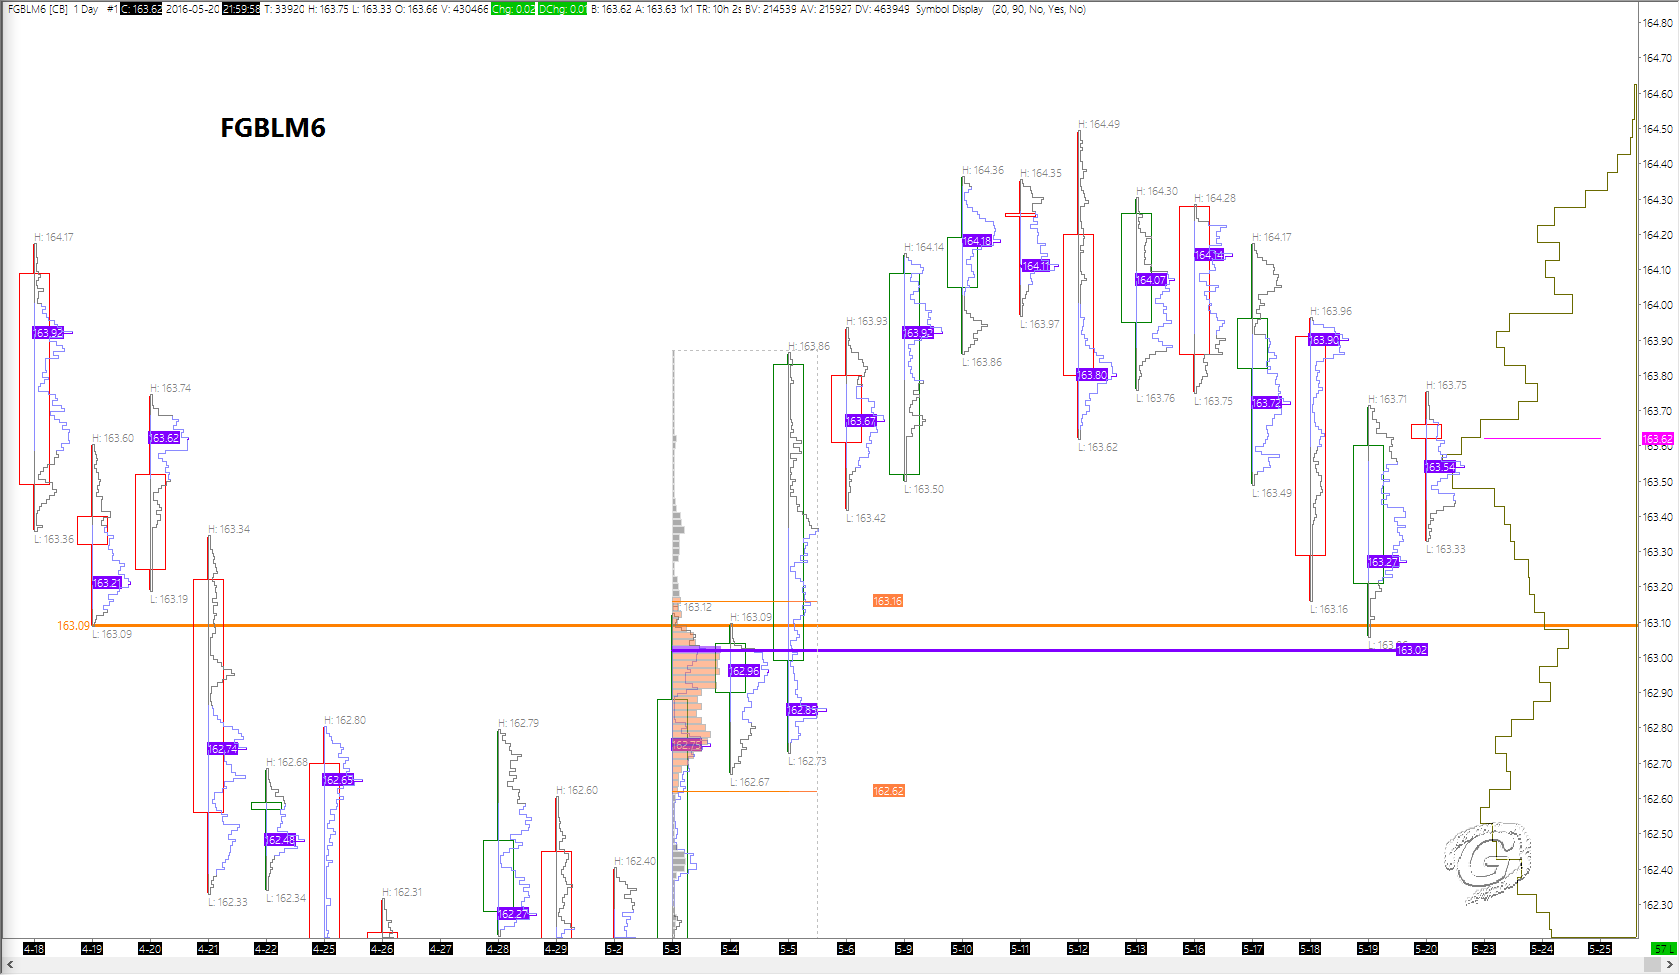 Bund found support at 163.09